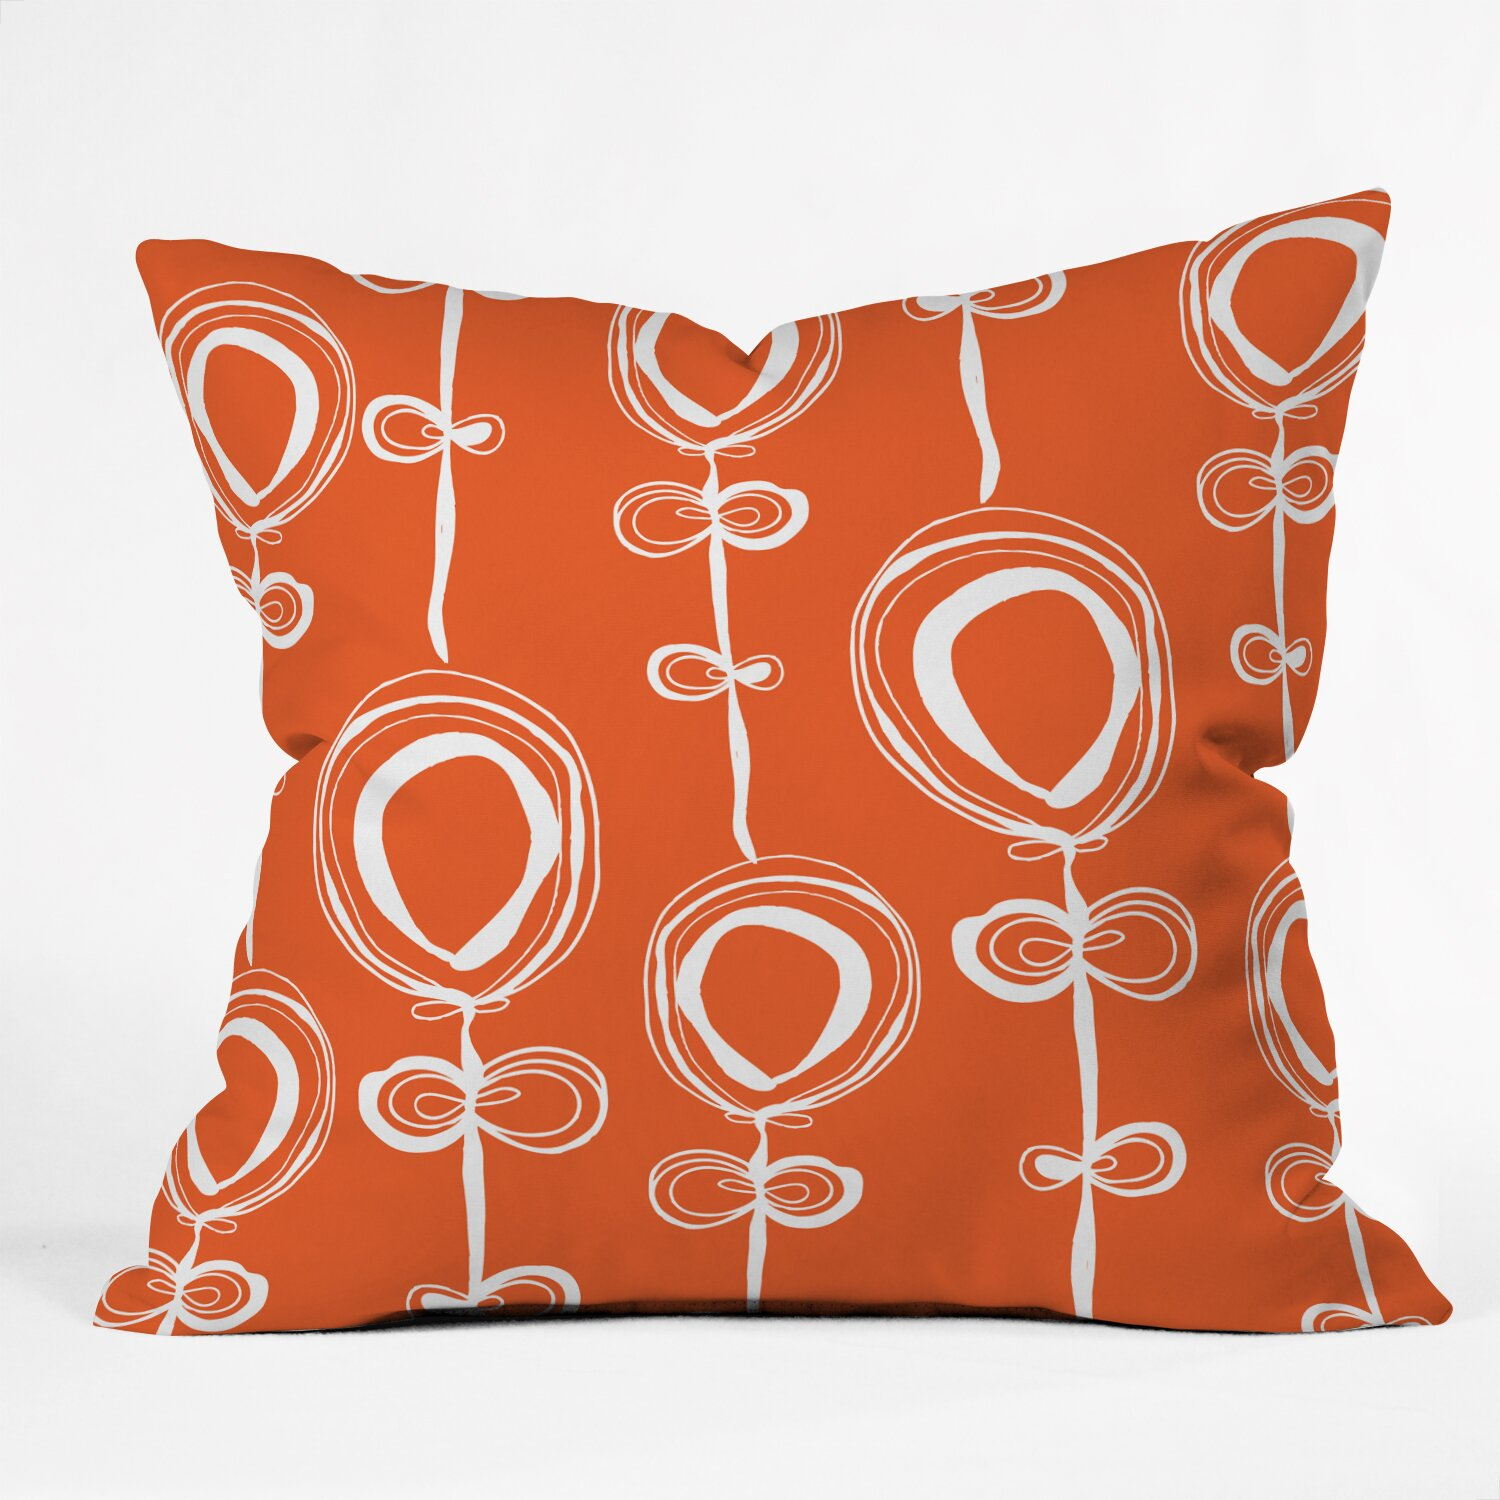 DENY Designs Rachael Taylor Contemporary Throw Pillow & Reviews Wayfair